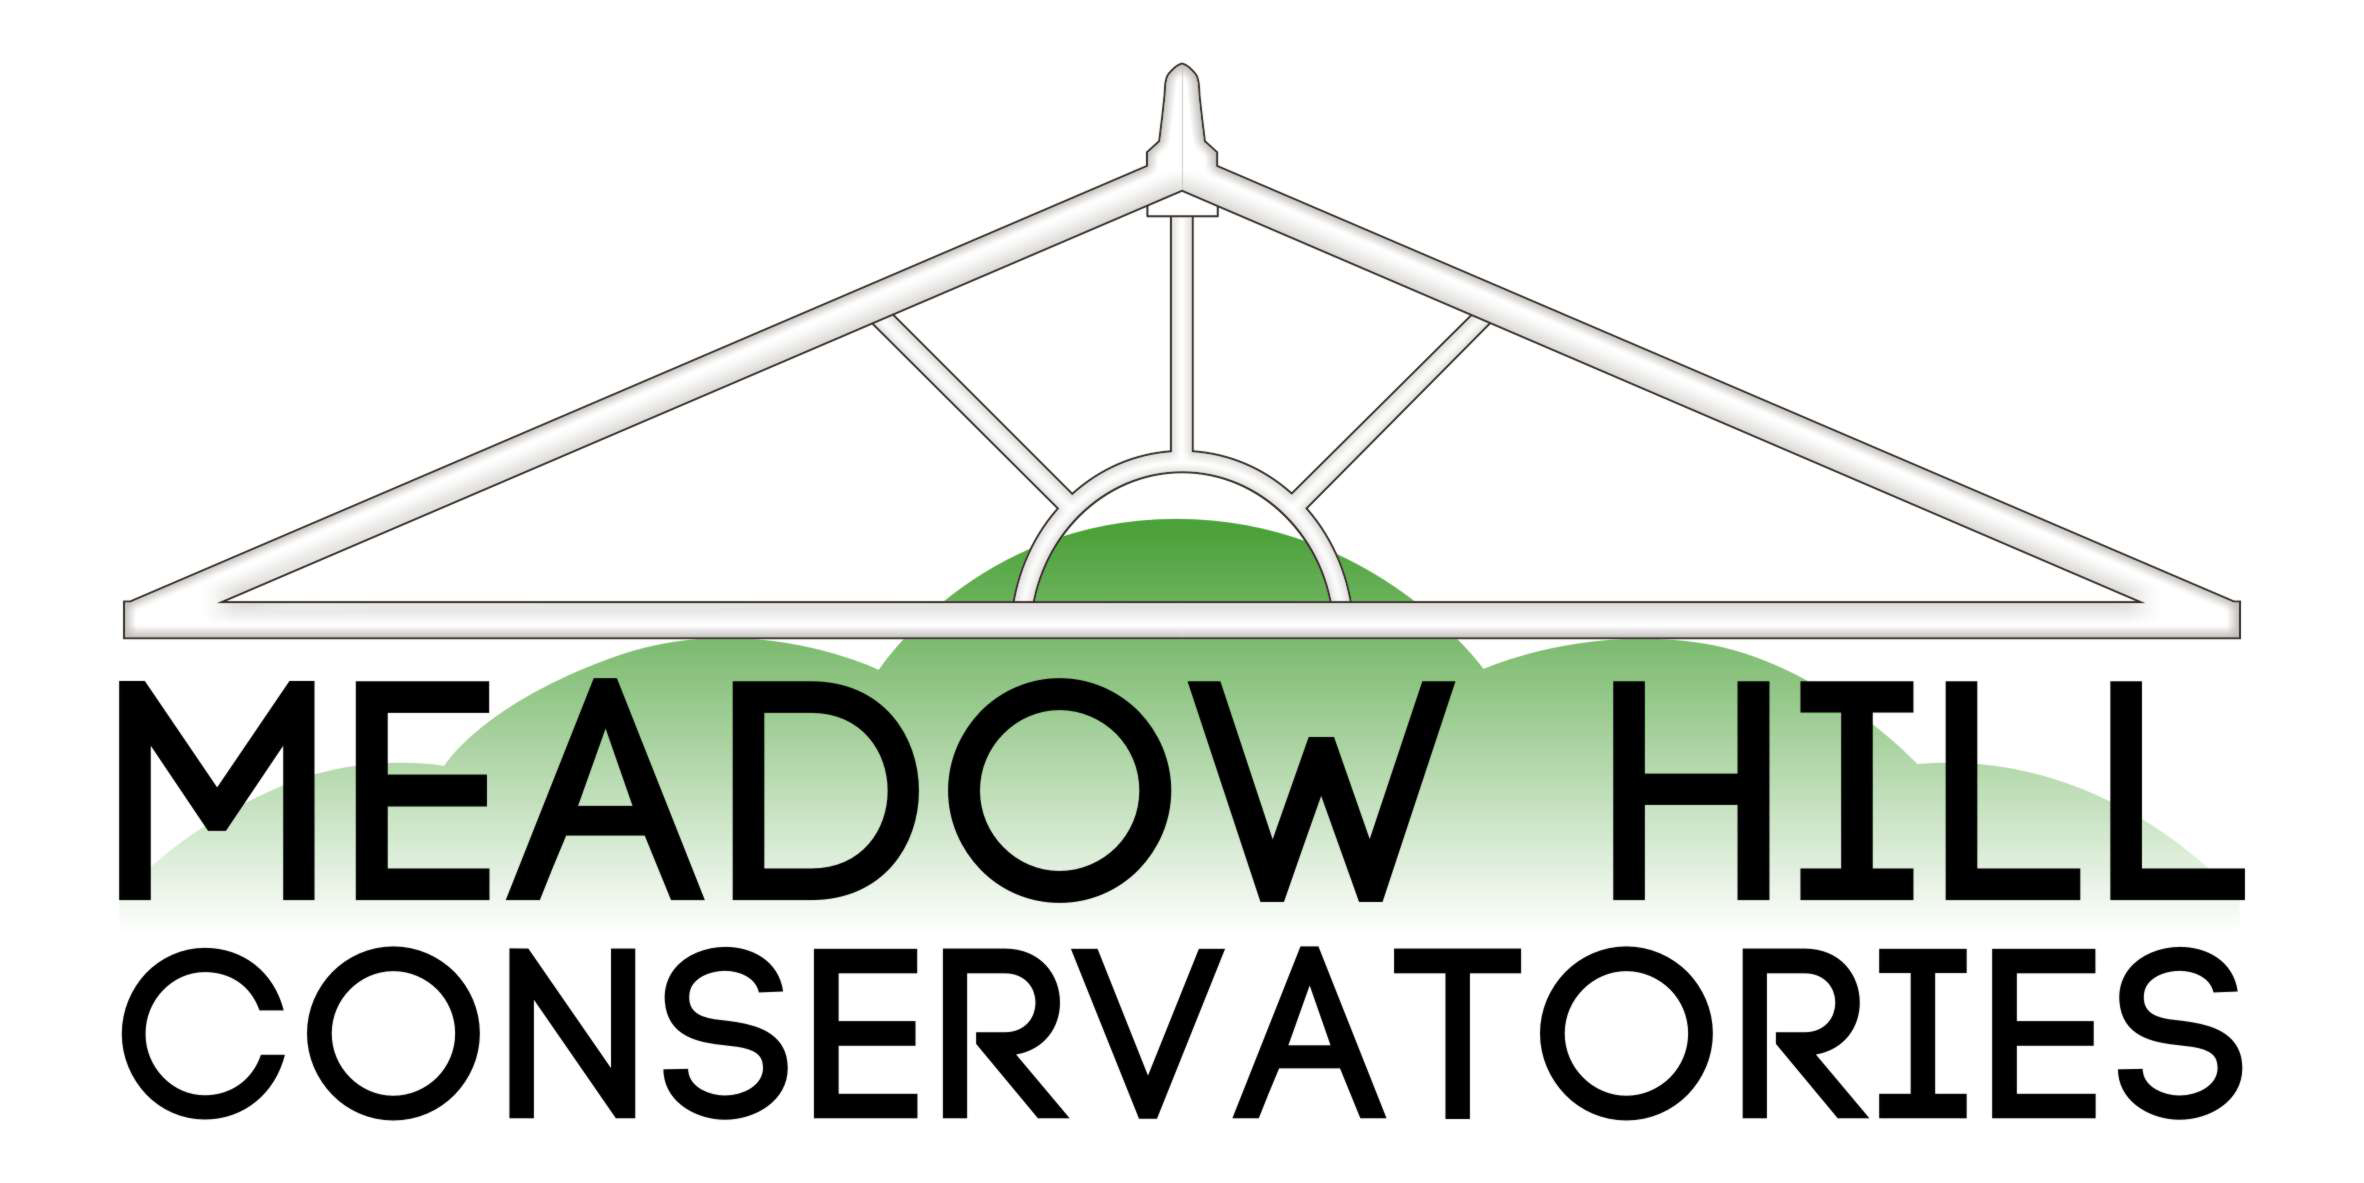 Meadow Hill Conservatories